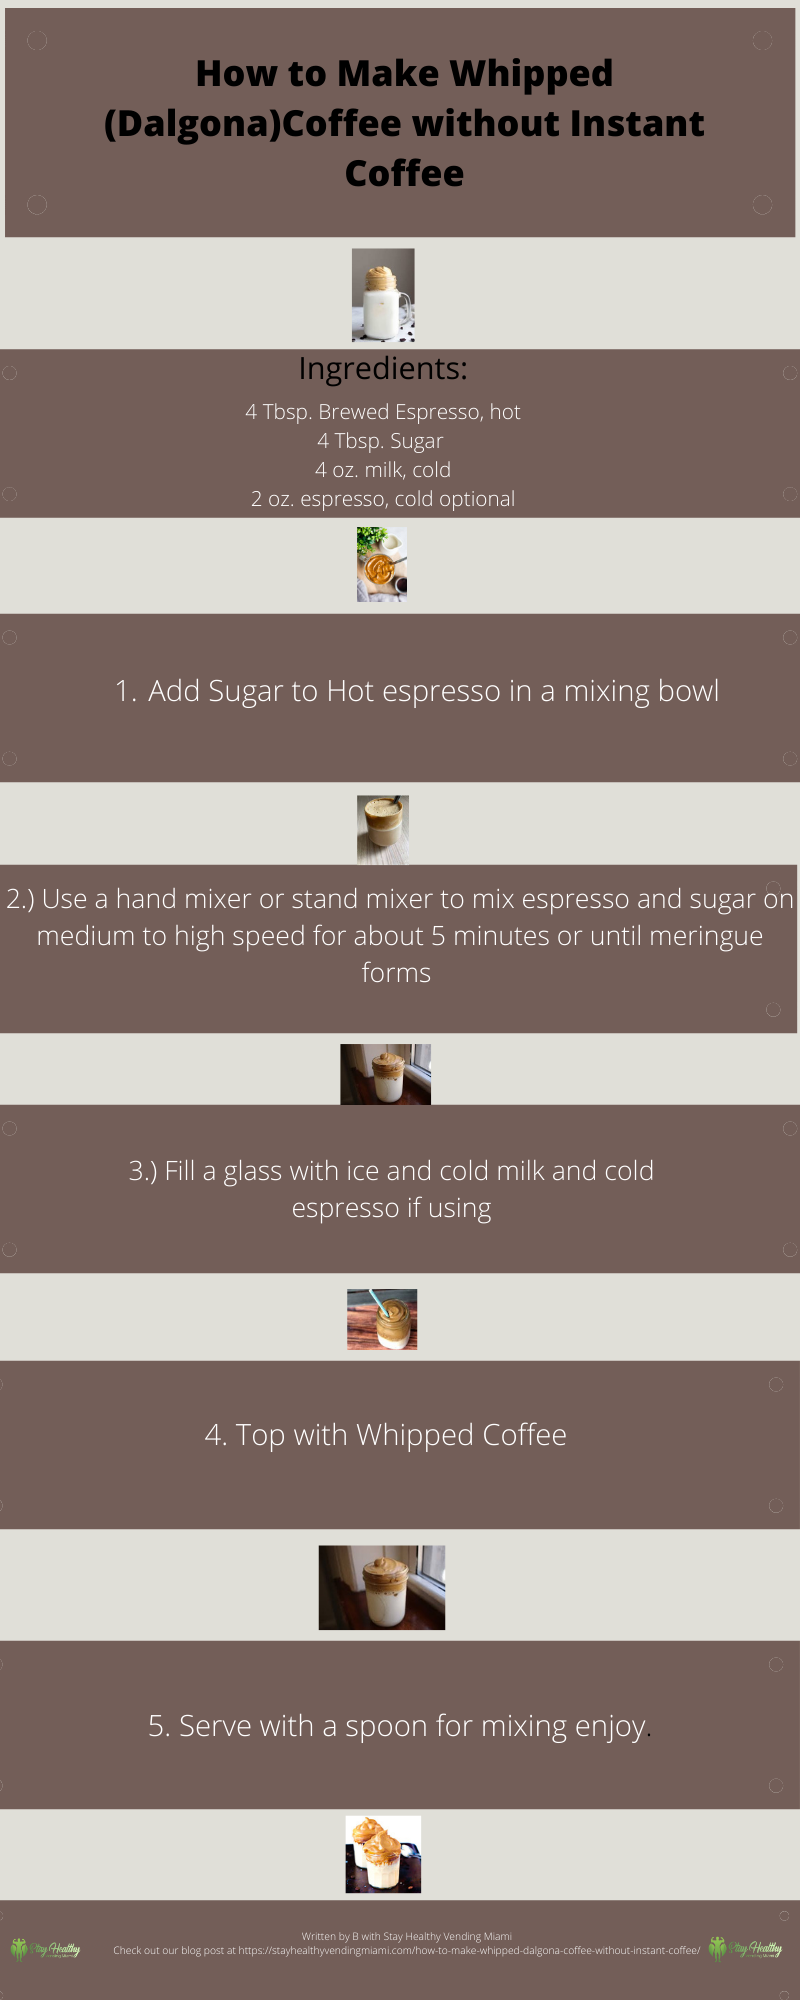 infographic on how to make whipped coffee without instant coffee. Delicious recipe. 100% vegan friendly. Espress, cold milk, sugar, an electric mixer or hand mixer and that's pretty much all you need.